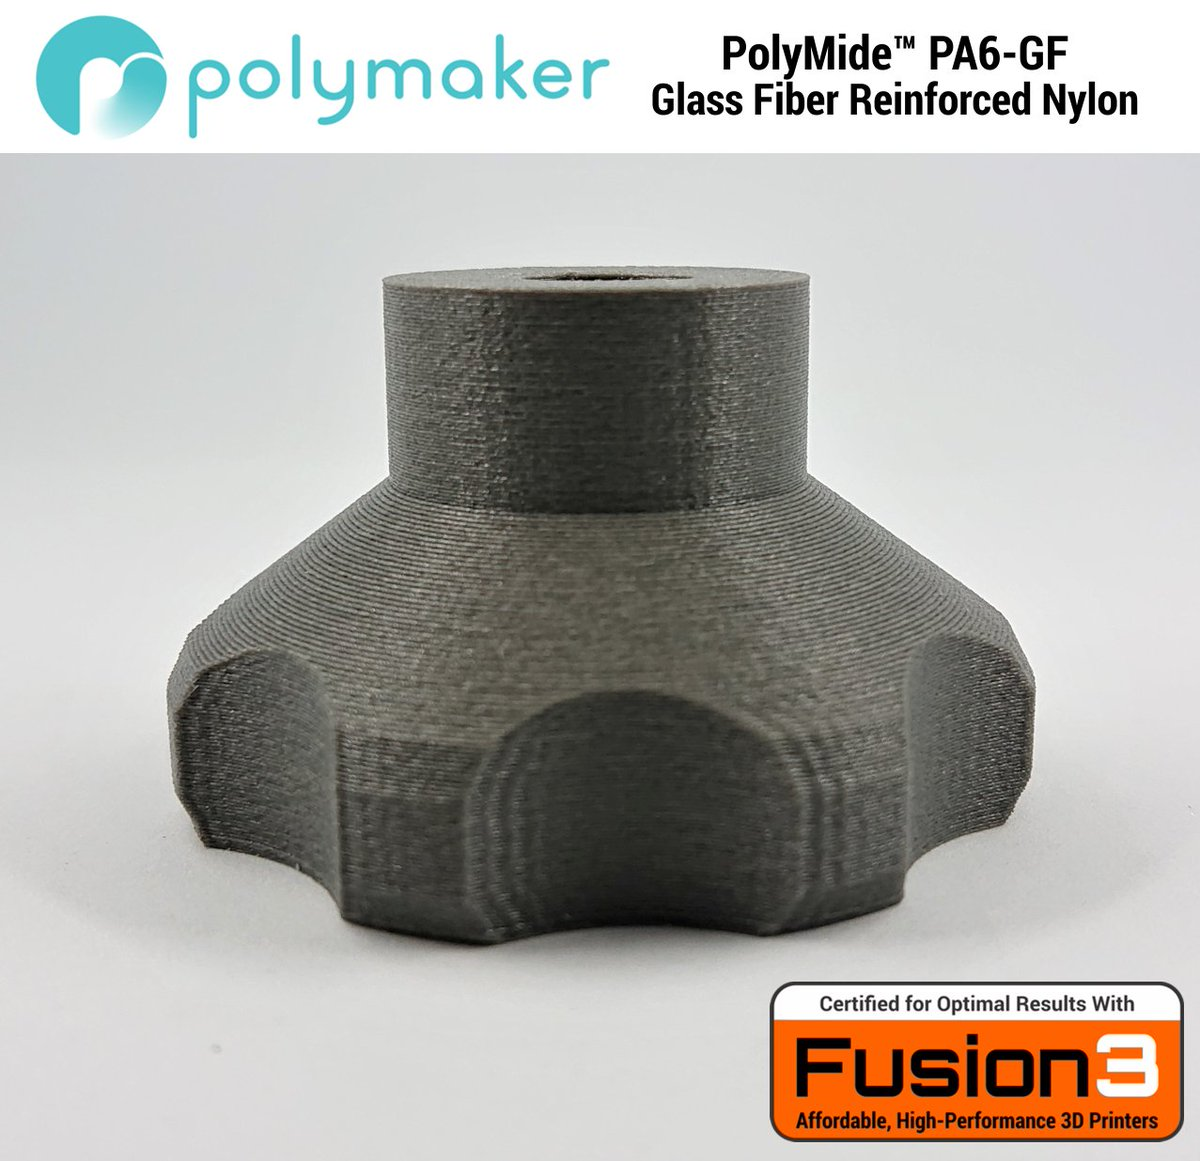 PolyMide™ PA6-GF is now certified on the @Fusion3DPrint 3d printer.